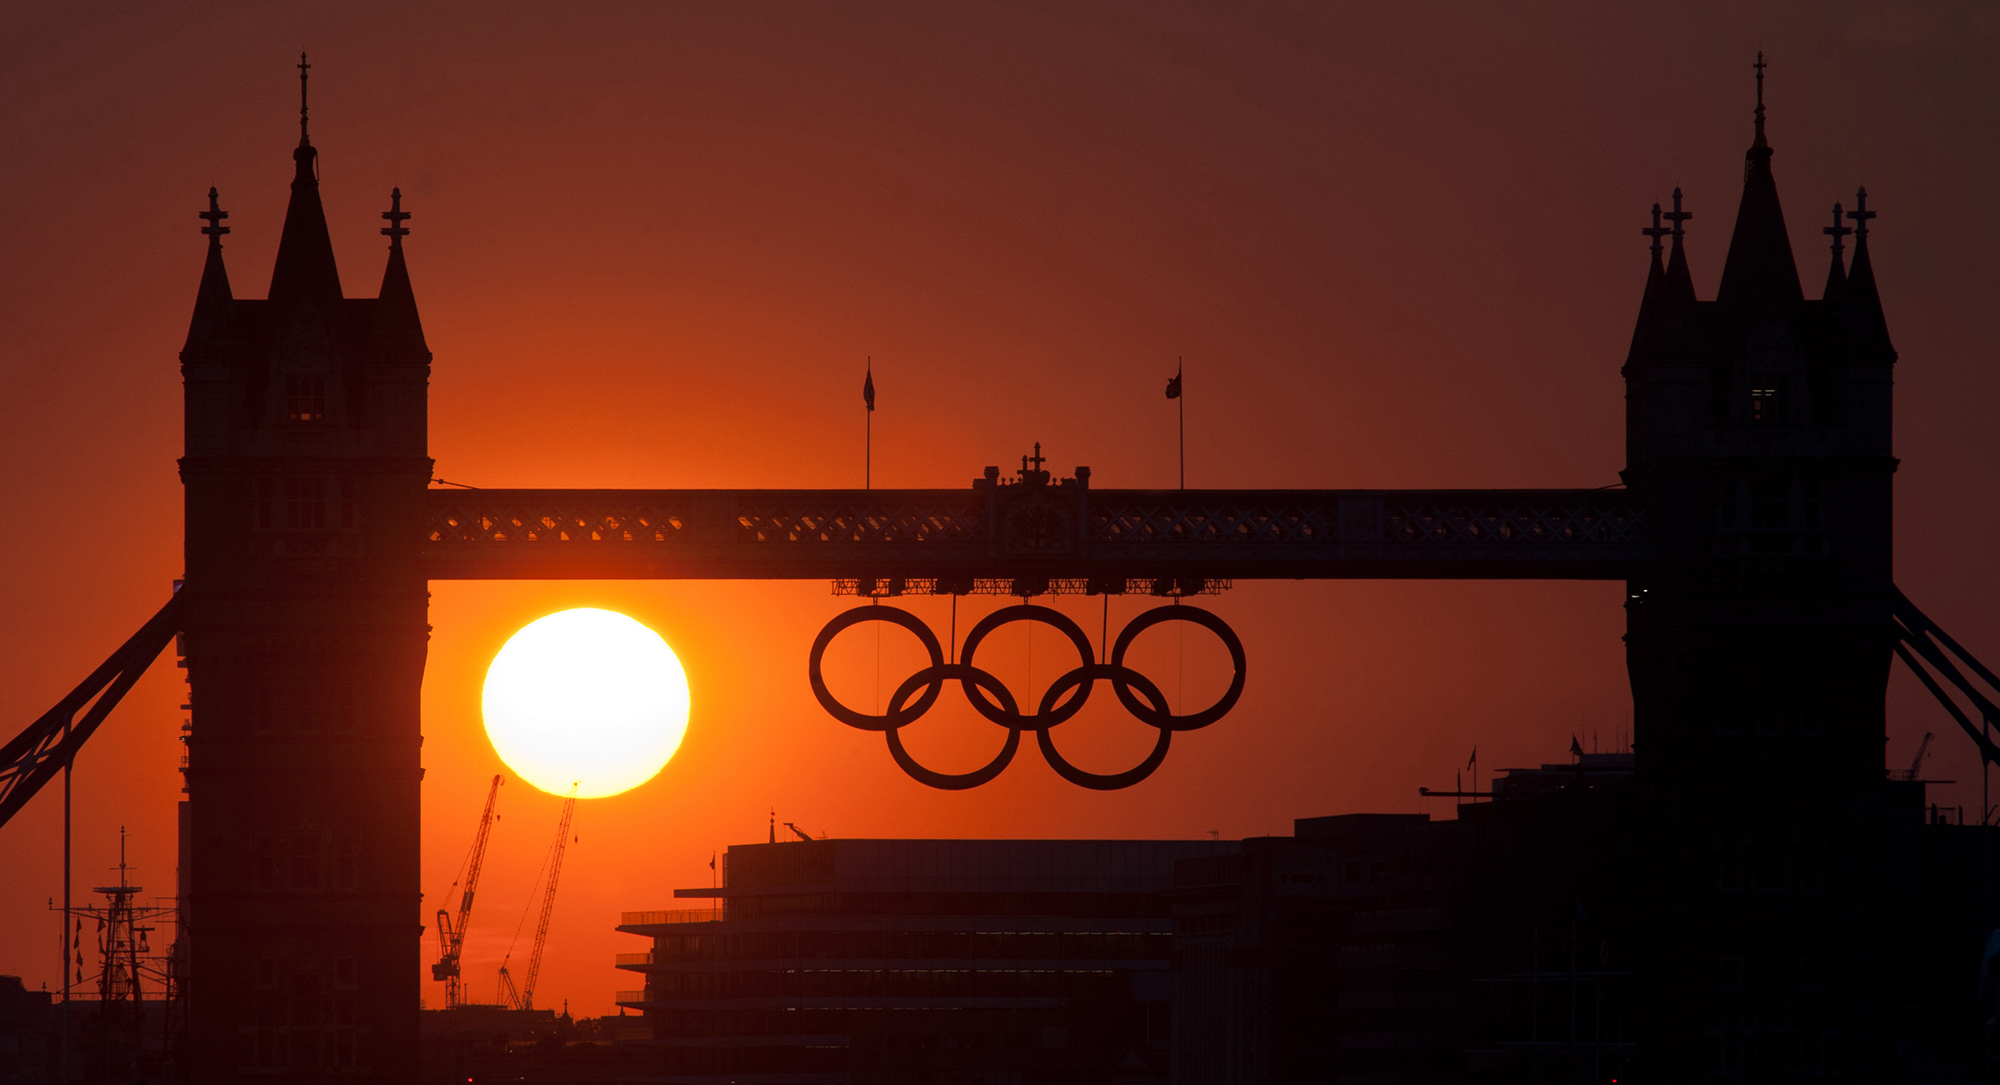 The sun sets behind Tower Bridge and the Olympic Rings in Central London during the 2012 London Olympic Games.